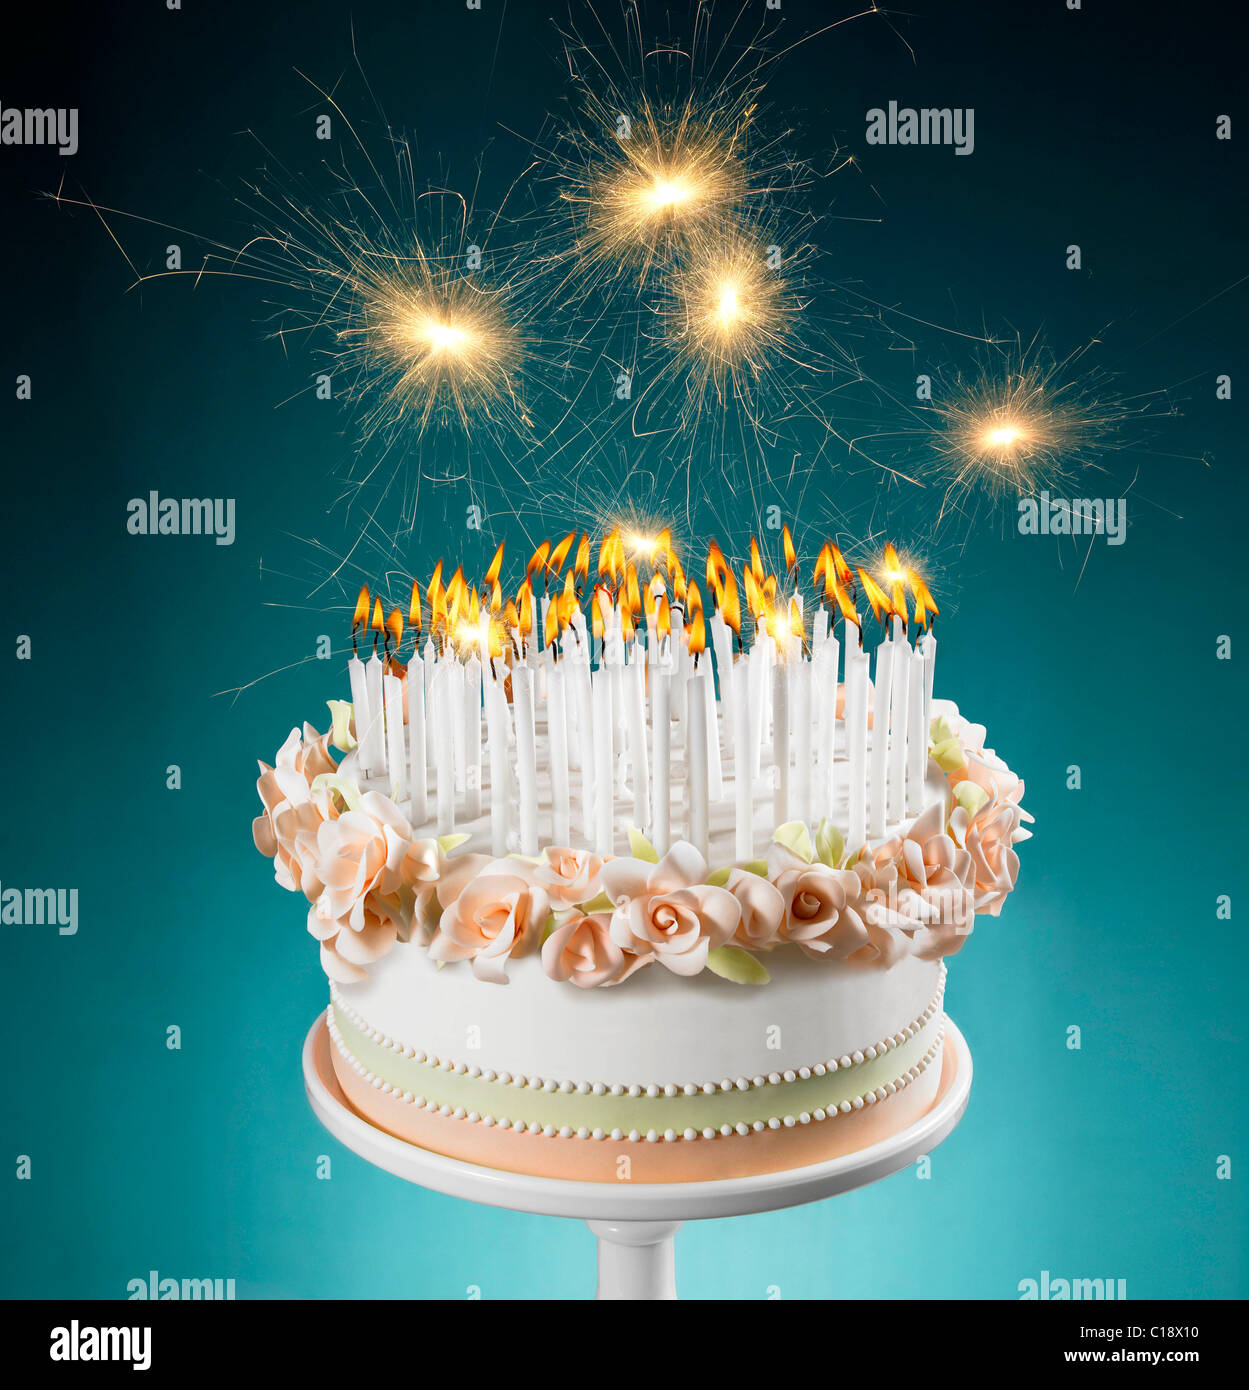 Image Birthday Cake With Lots Of Candles : Birthday cake with lots of burning candles Stock Photo ...